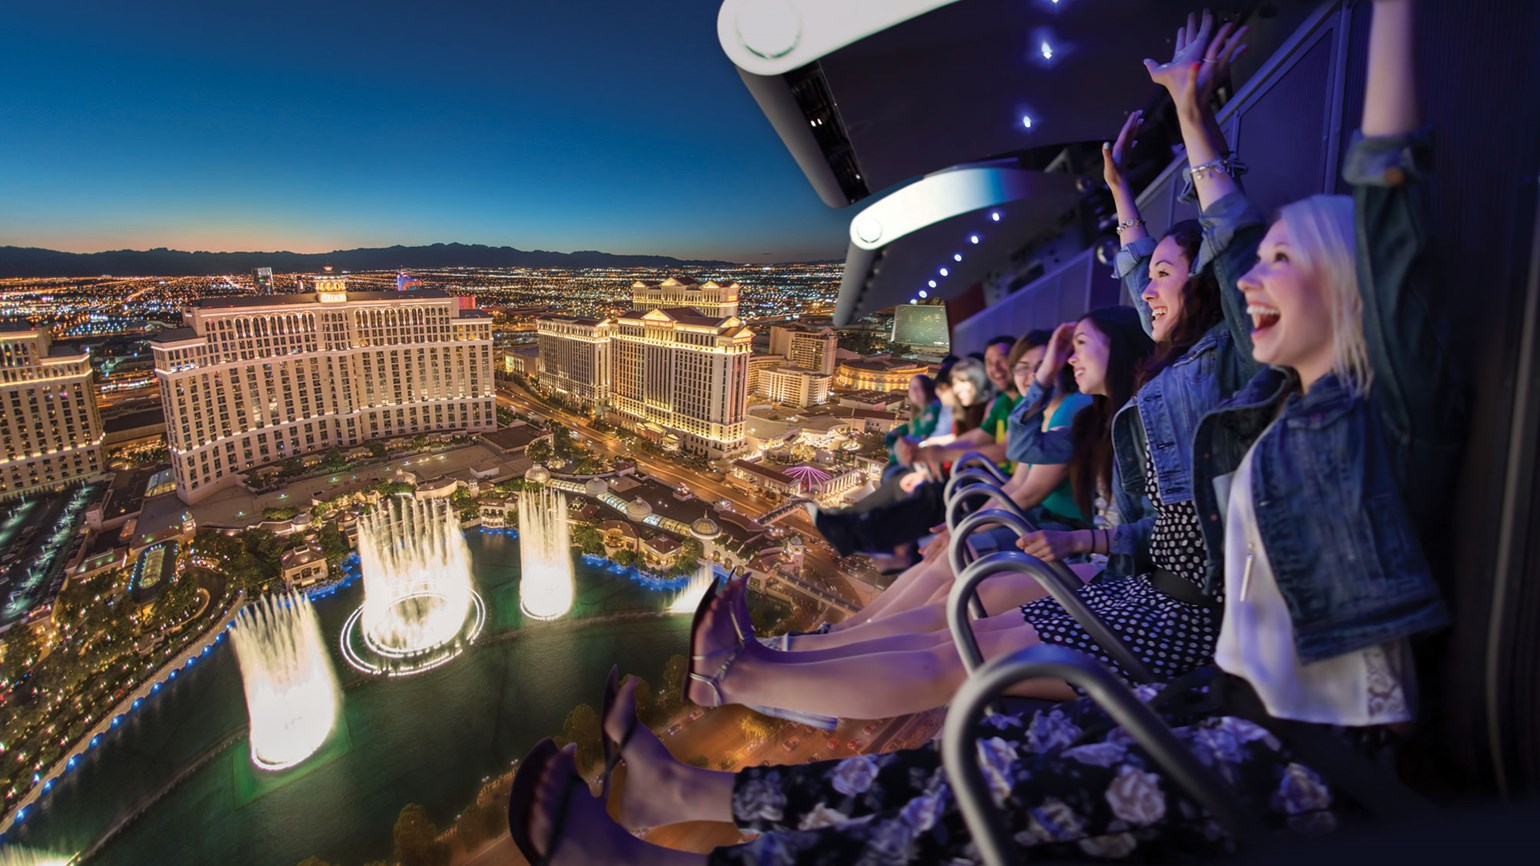 Virtual flight attraction coming to Las Vegas